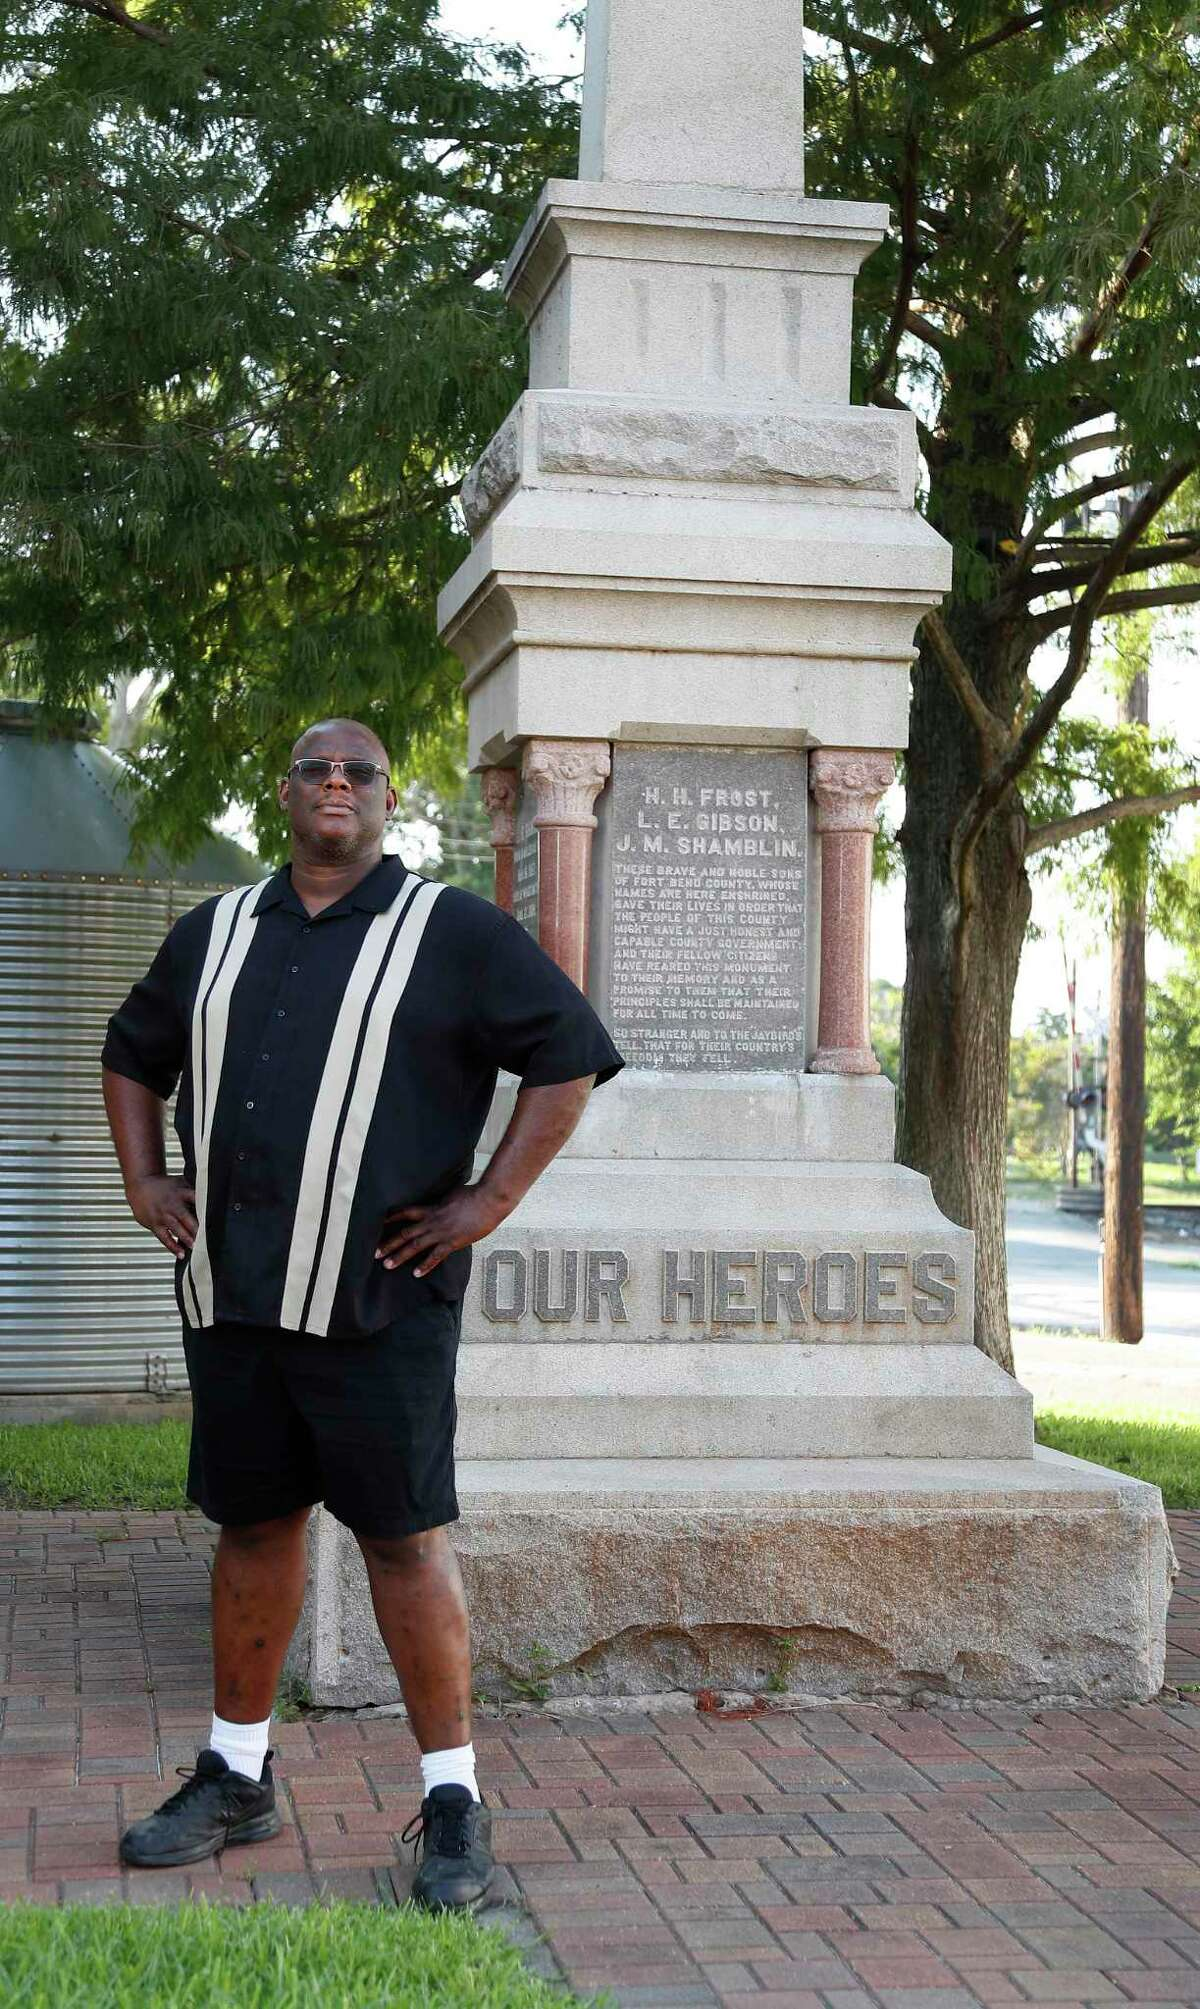 Tres Davis, a Richmond resident, stands next to a controversial monument that honors white supremacists on August 6, 2020, in Richmond. Over the summer, community members asked for the monument to be removed and Davis sought to claim ownership to do so. Fort Bend County commissioners voted unanimously on Oct. 27, 2020 to enter into an agreement with the city of Richmond to move the controversial monument to a local cemetery.